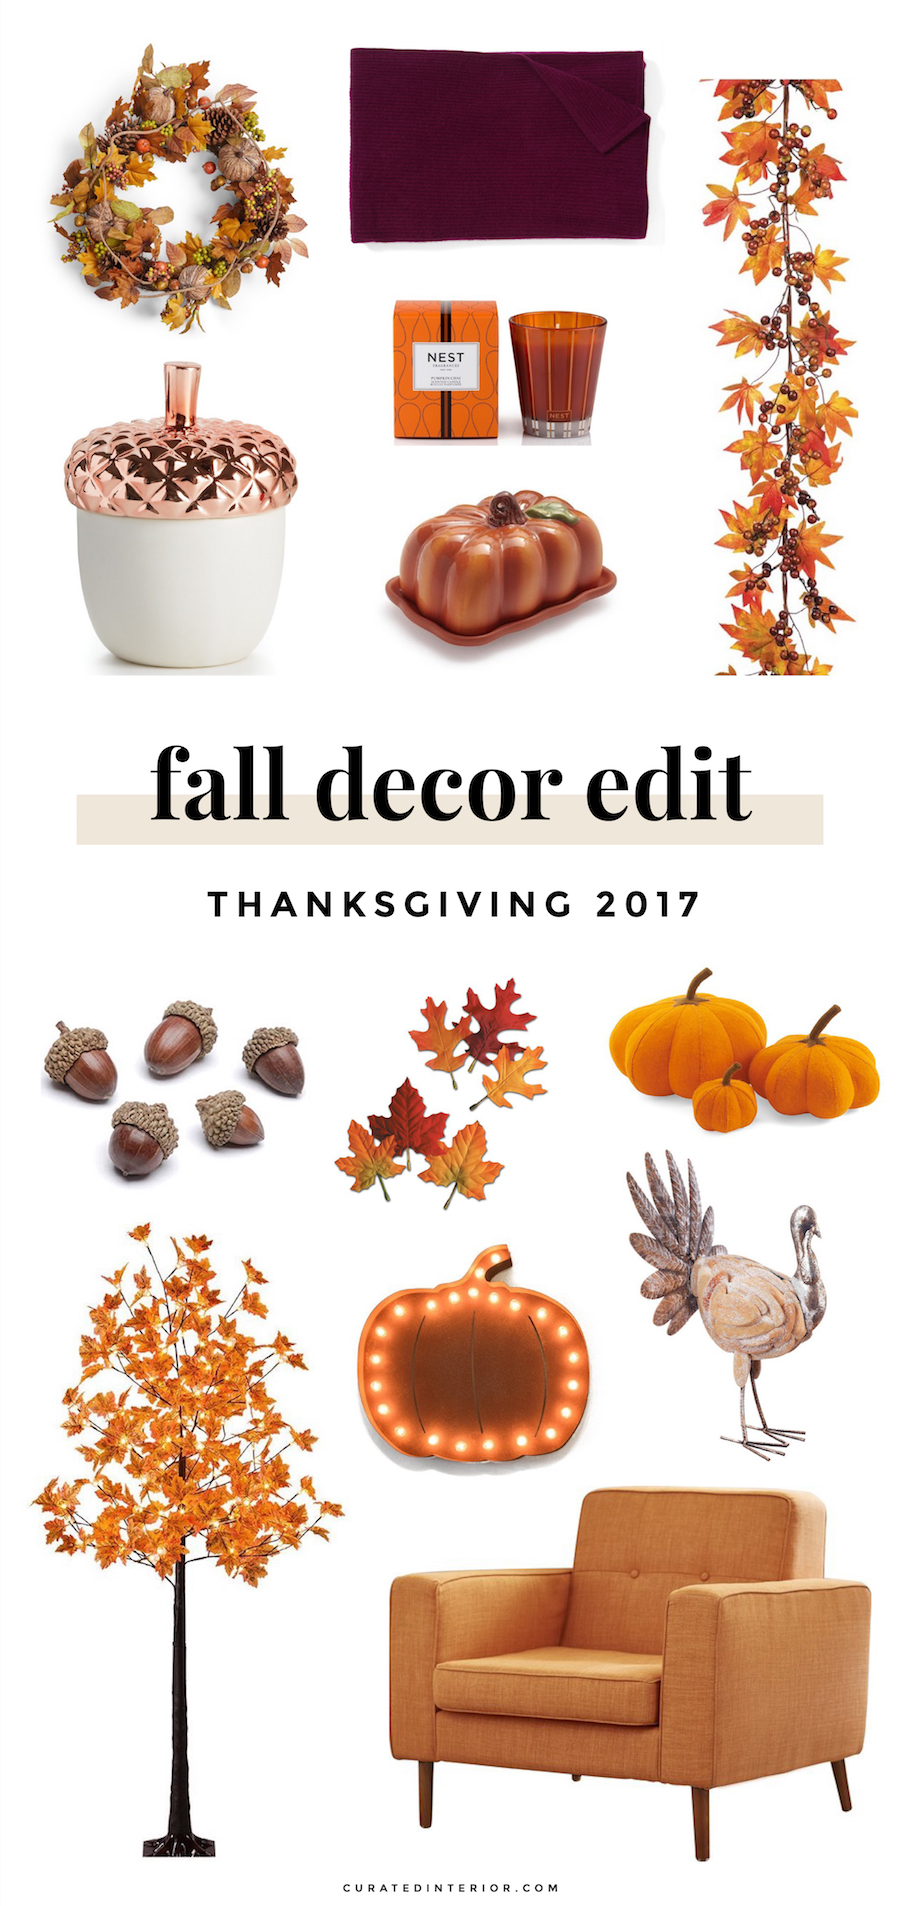 Fall Decor Edit 2017 | Happy Thanksgiving!